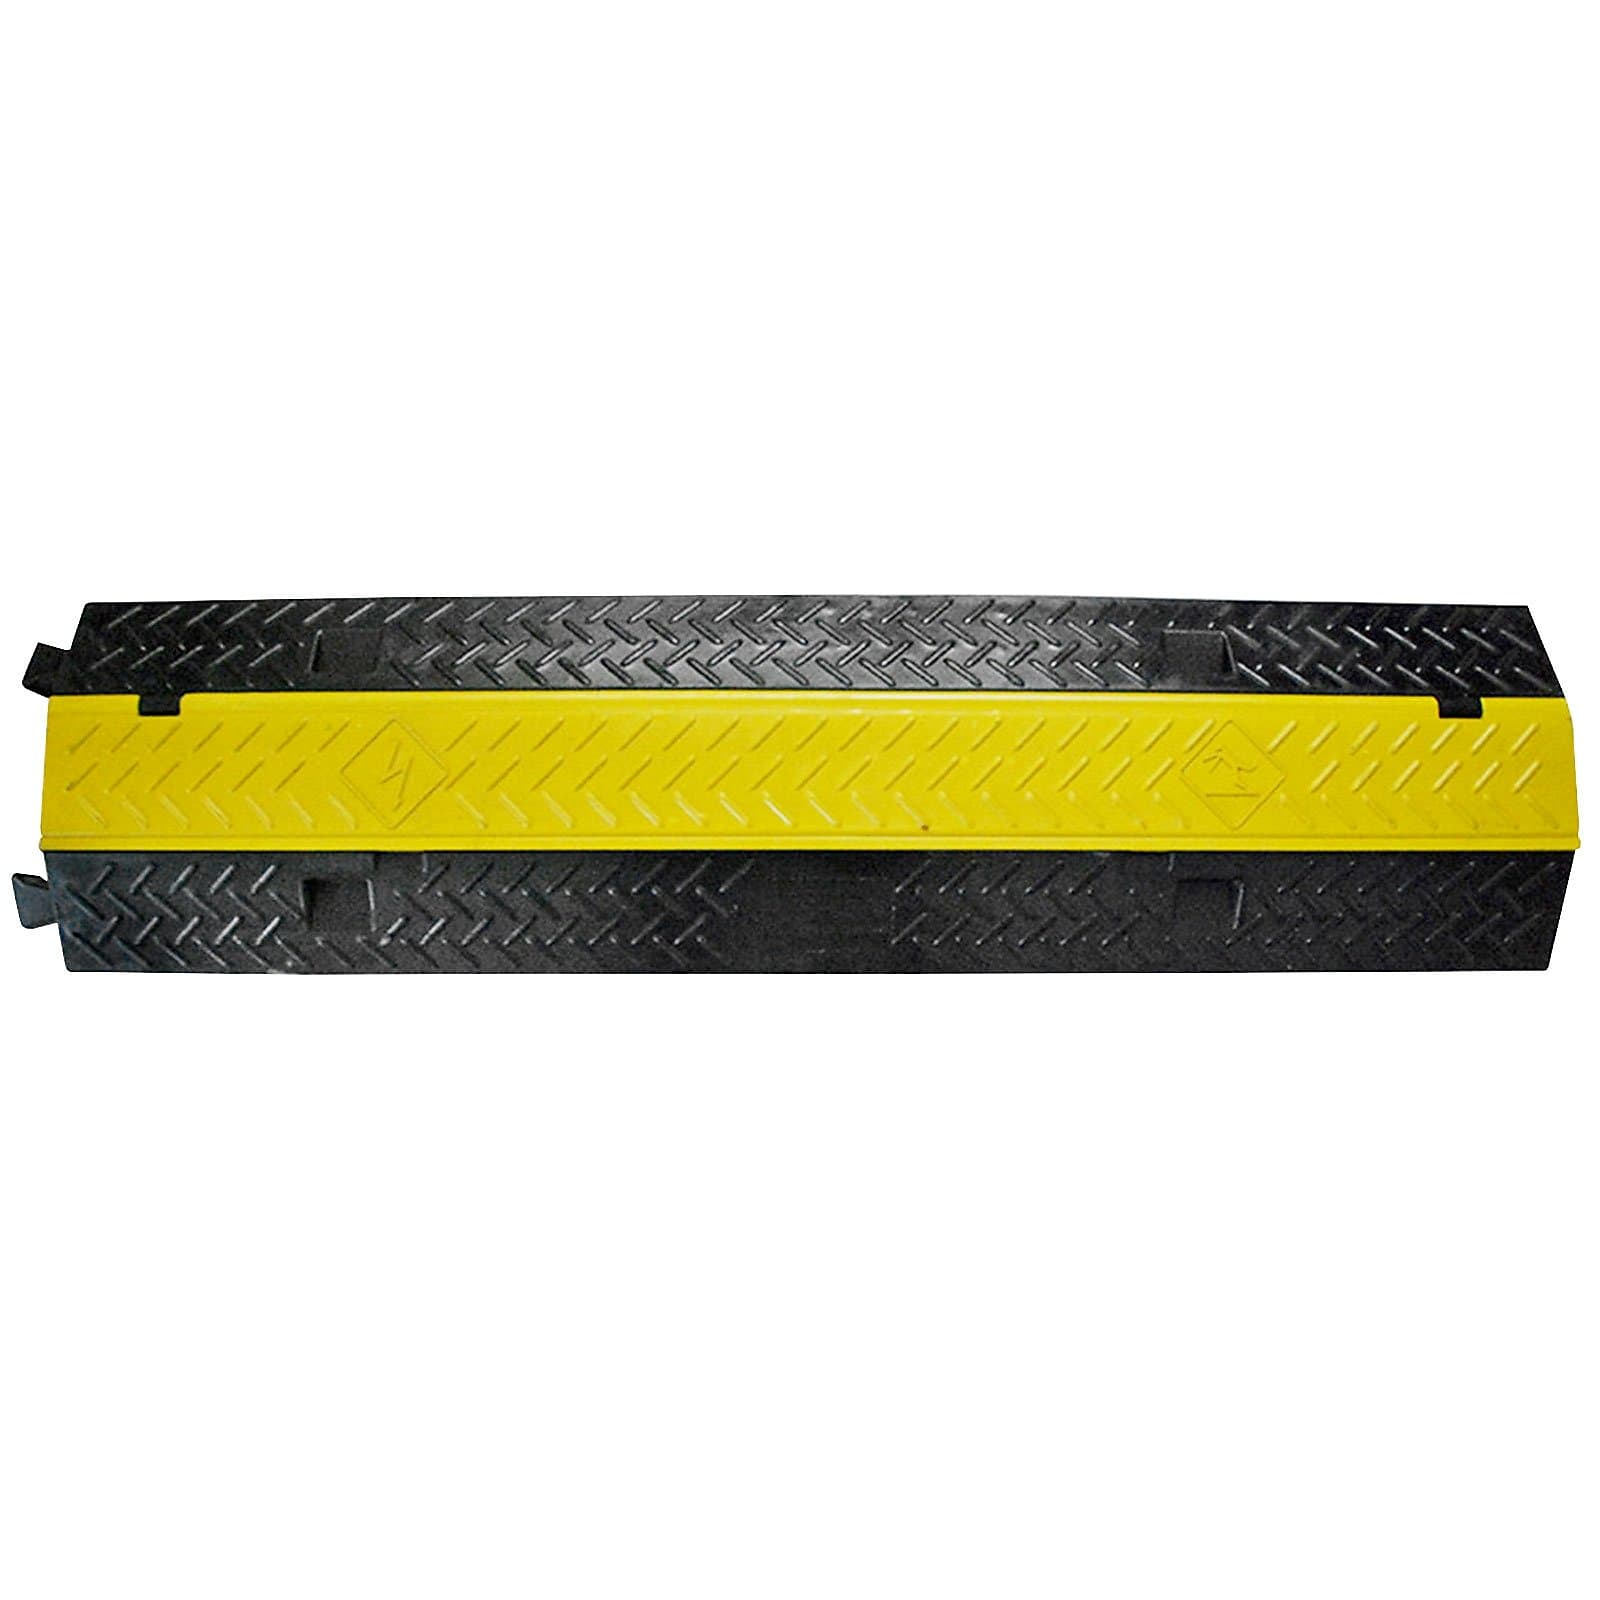 Cable Tray 2ch